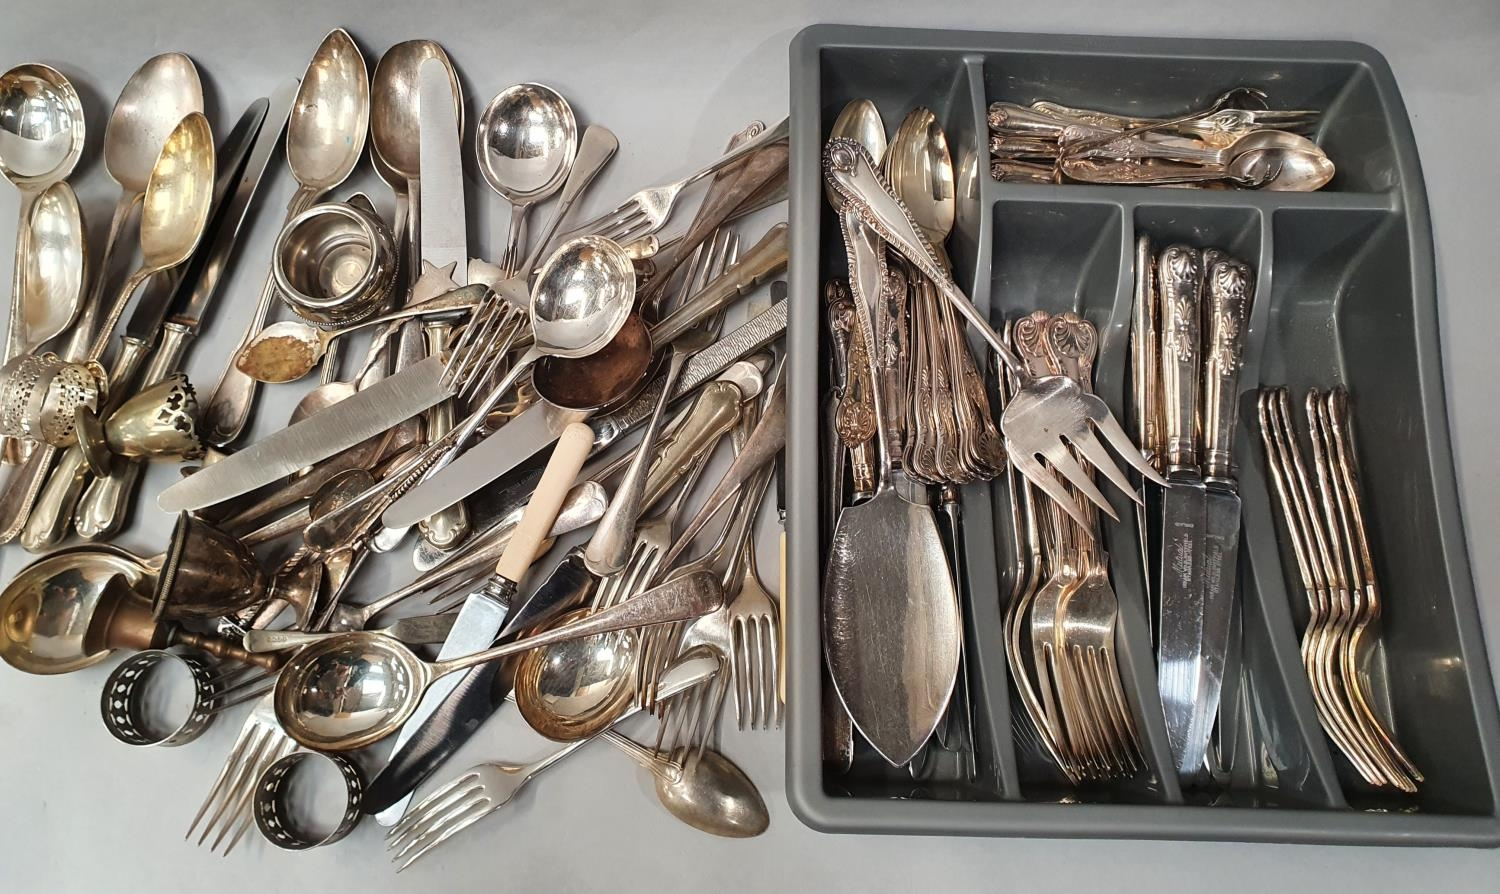 Collection of silver plated flatware.